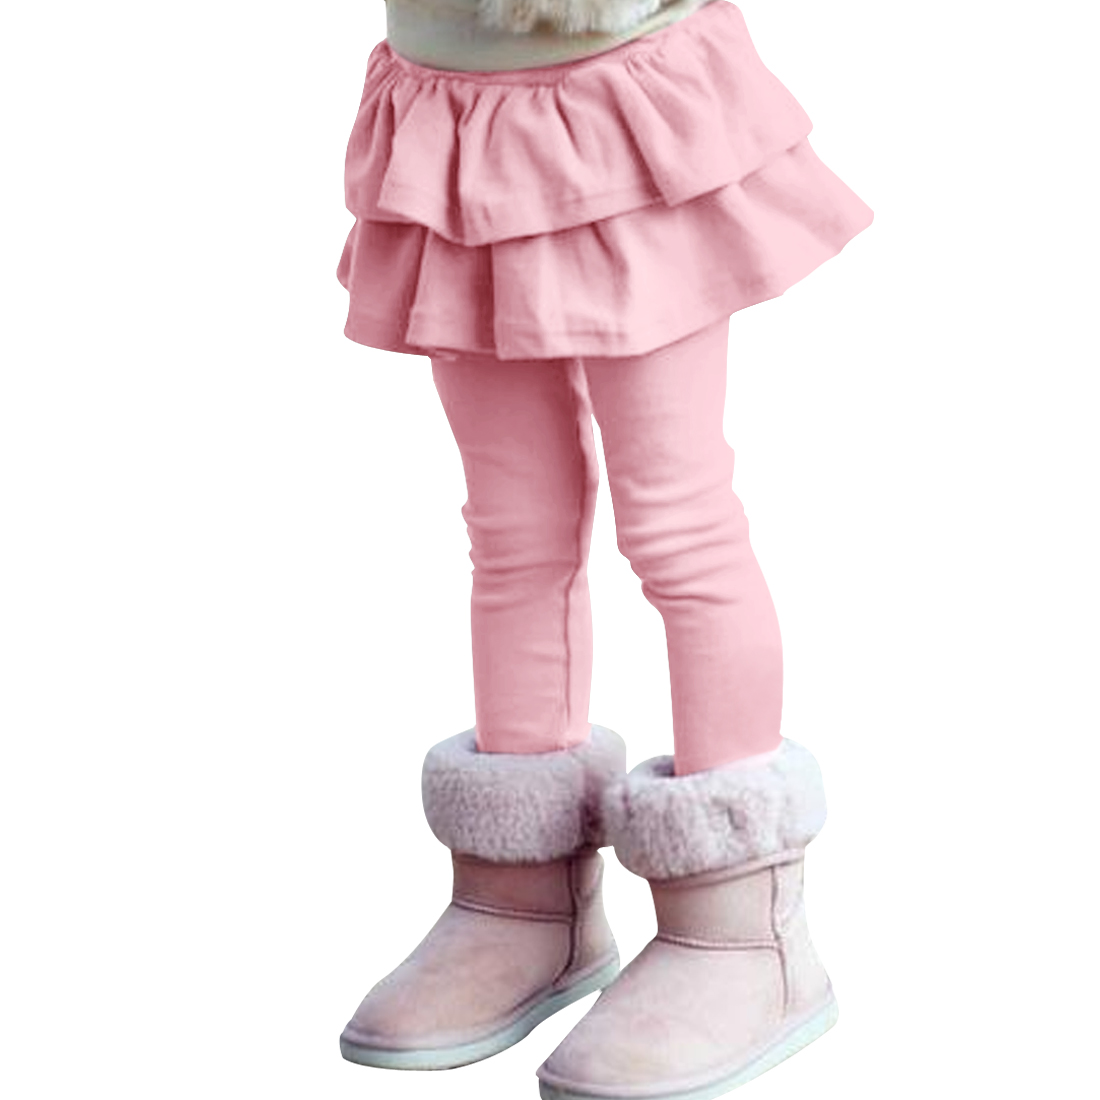 Girls High Rise Ruffled Soft Pants Pink 6X